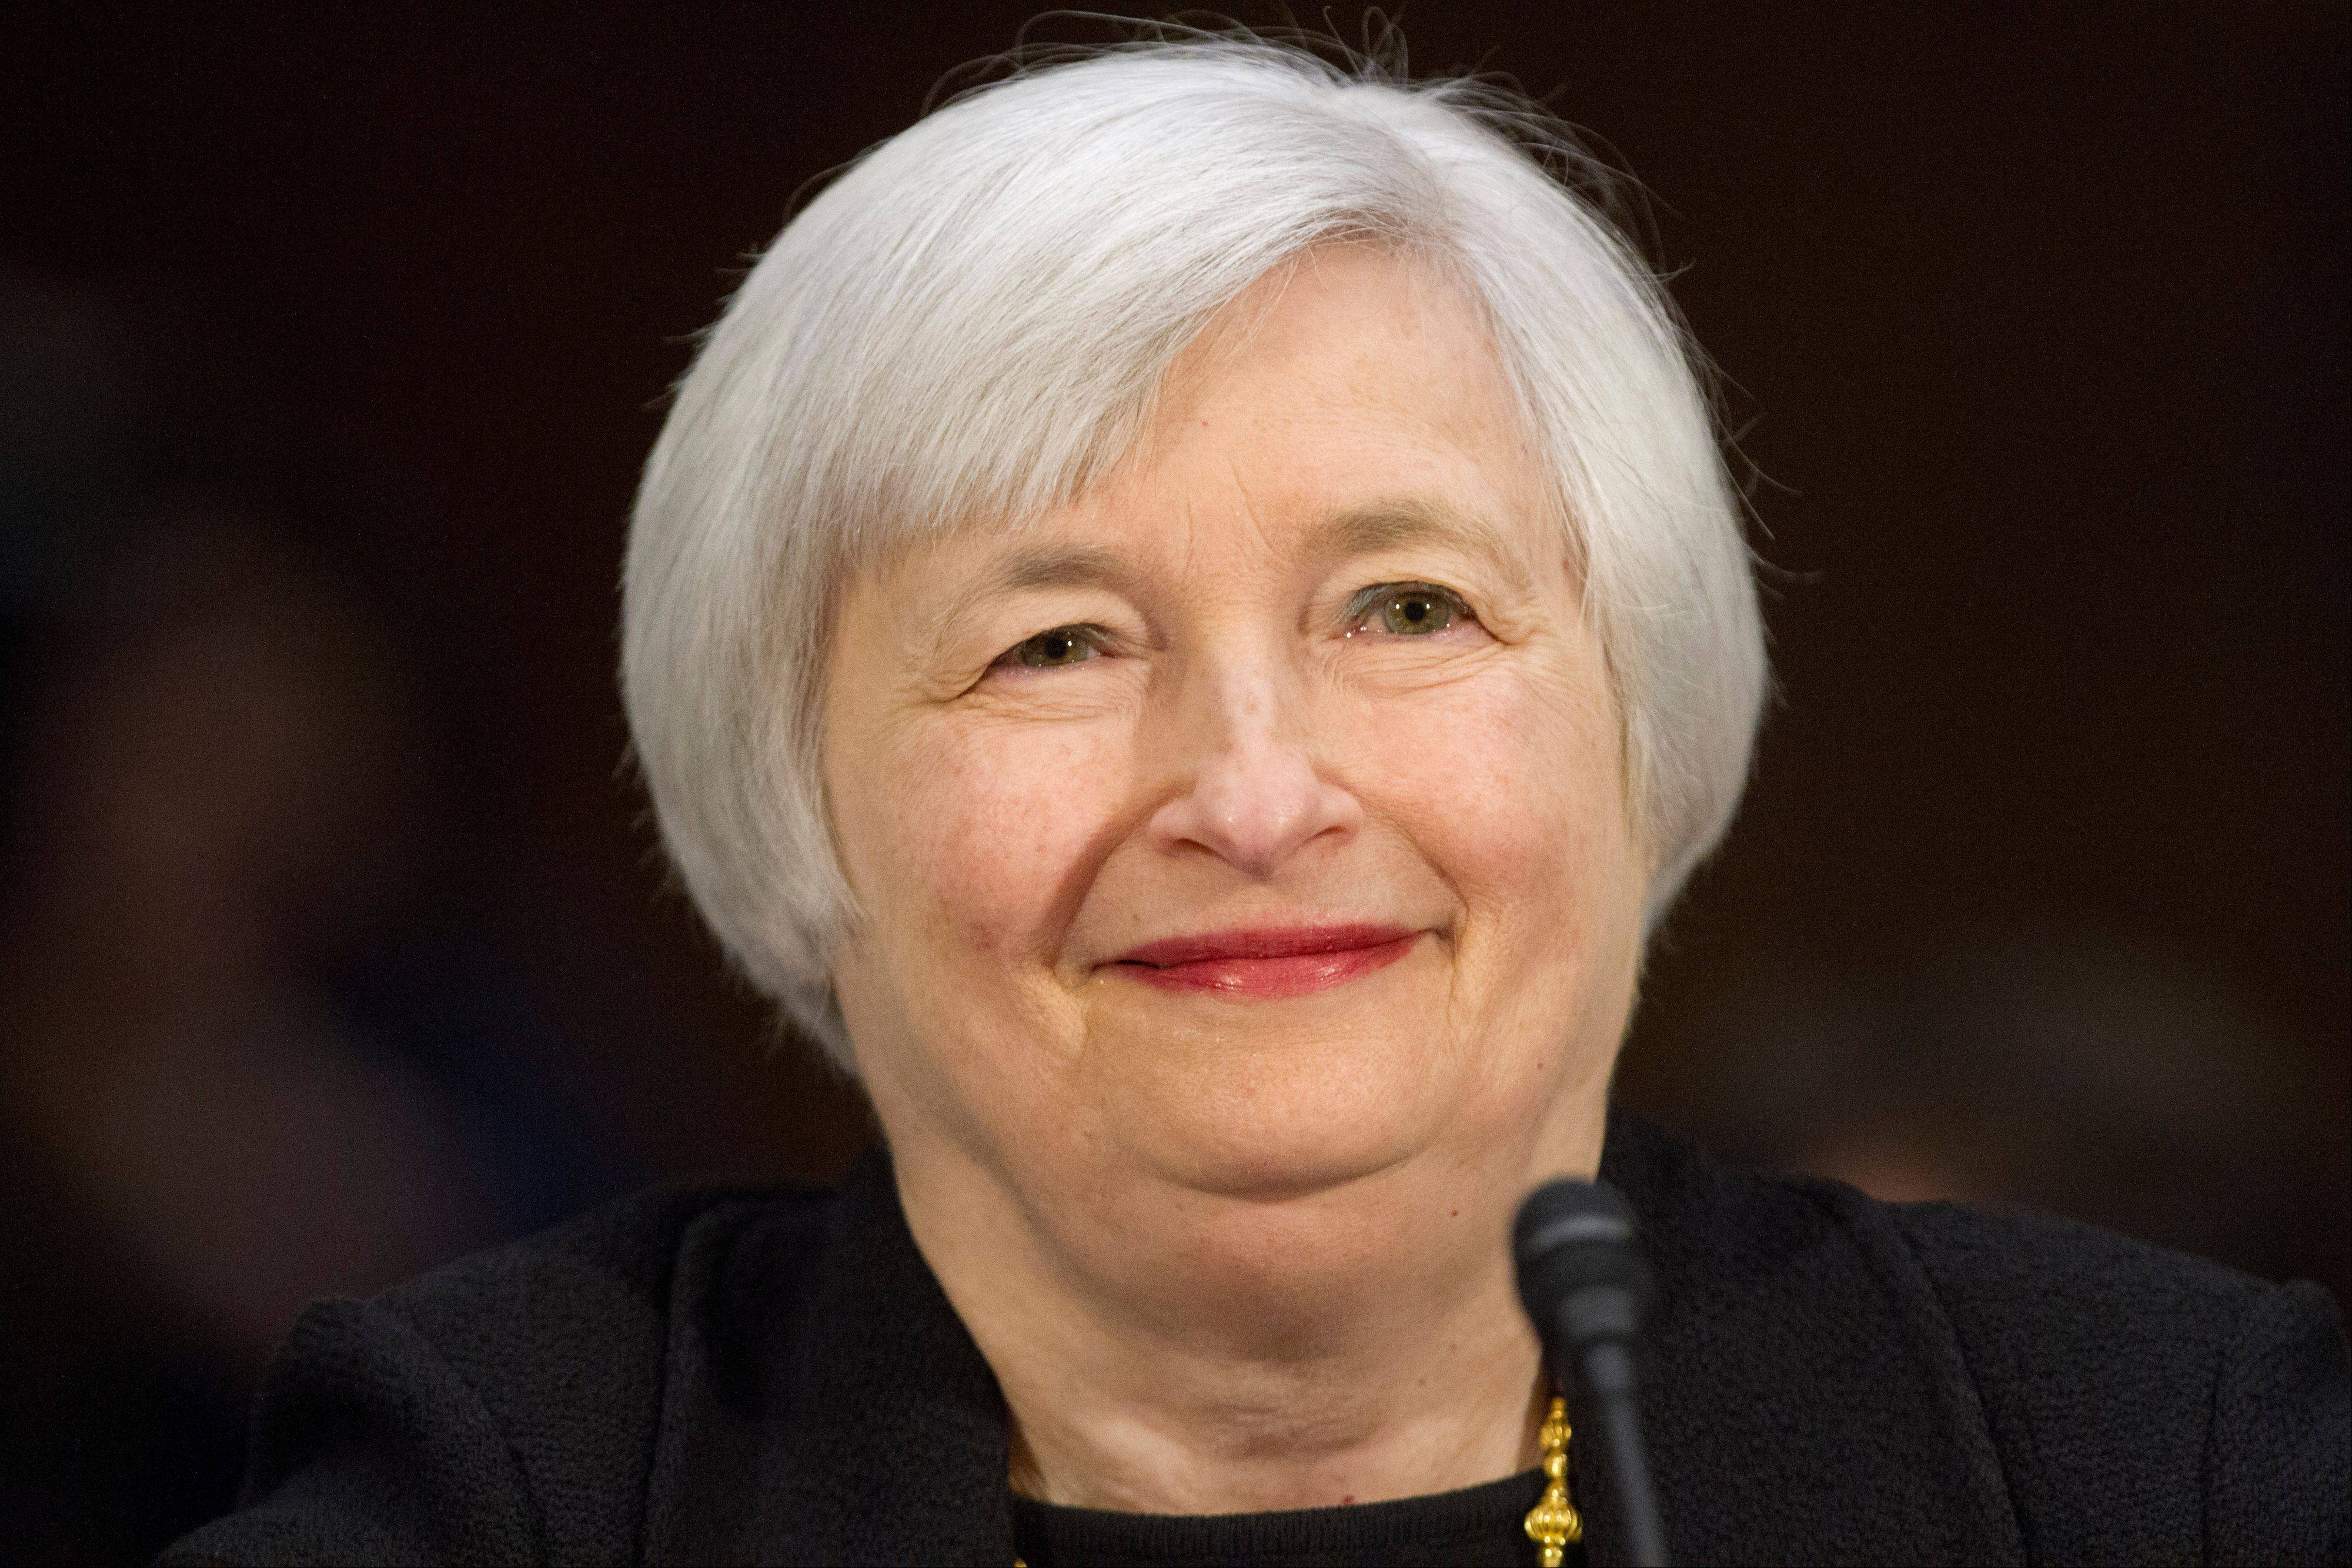 The Senate on Monday approved Janet Yellen, as Federal Reserve Board chairman, the first woman to serve in that role. She is a backer of the central bank's recent efforts to spur the economy with low interest rates and massive bond purchases.